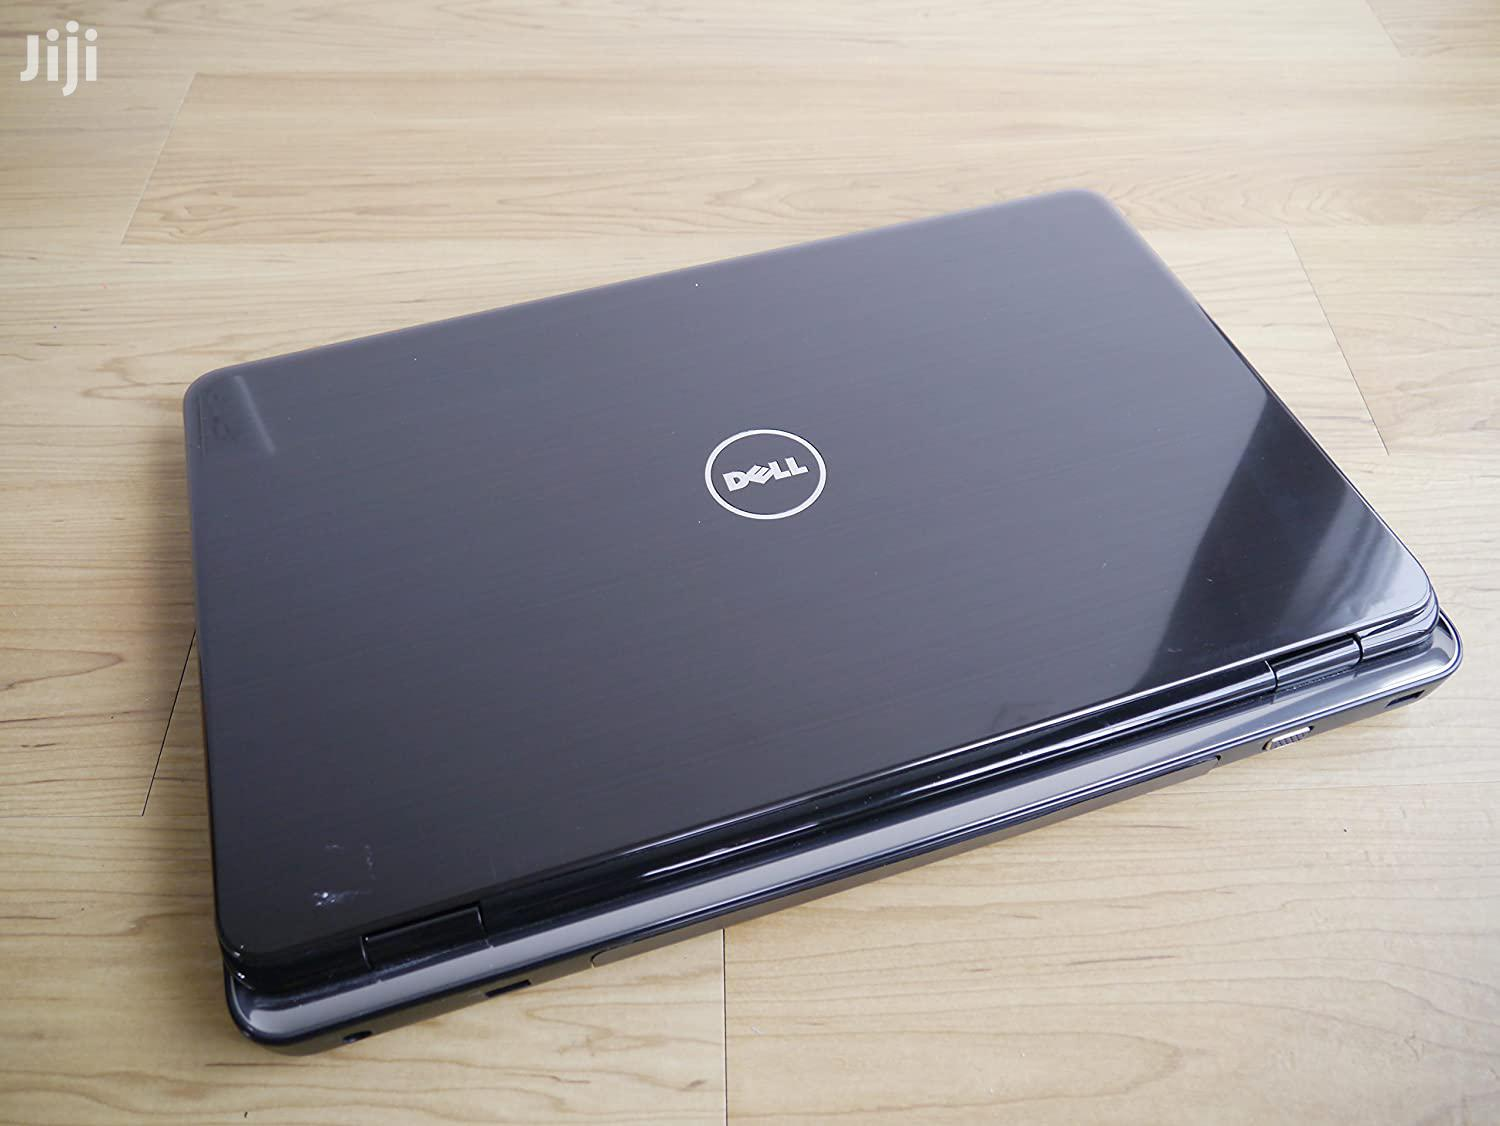 Laptop Dell 8GB Intel Core I3 HDD 500GB | Laptops & Computers for sale in Avenor Area, Greater Accra, Ghana